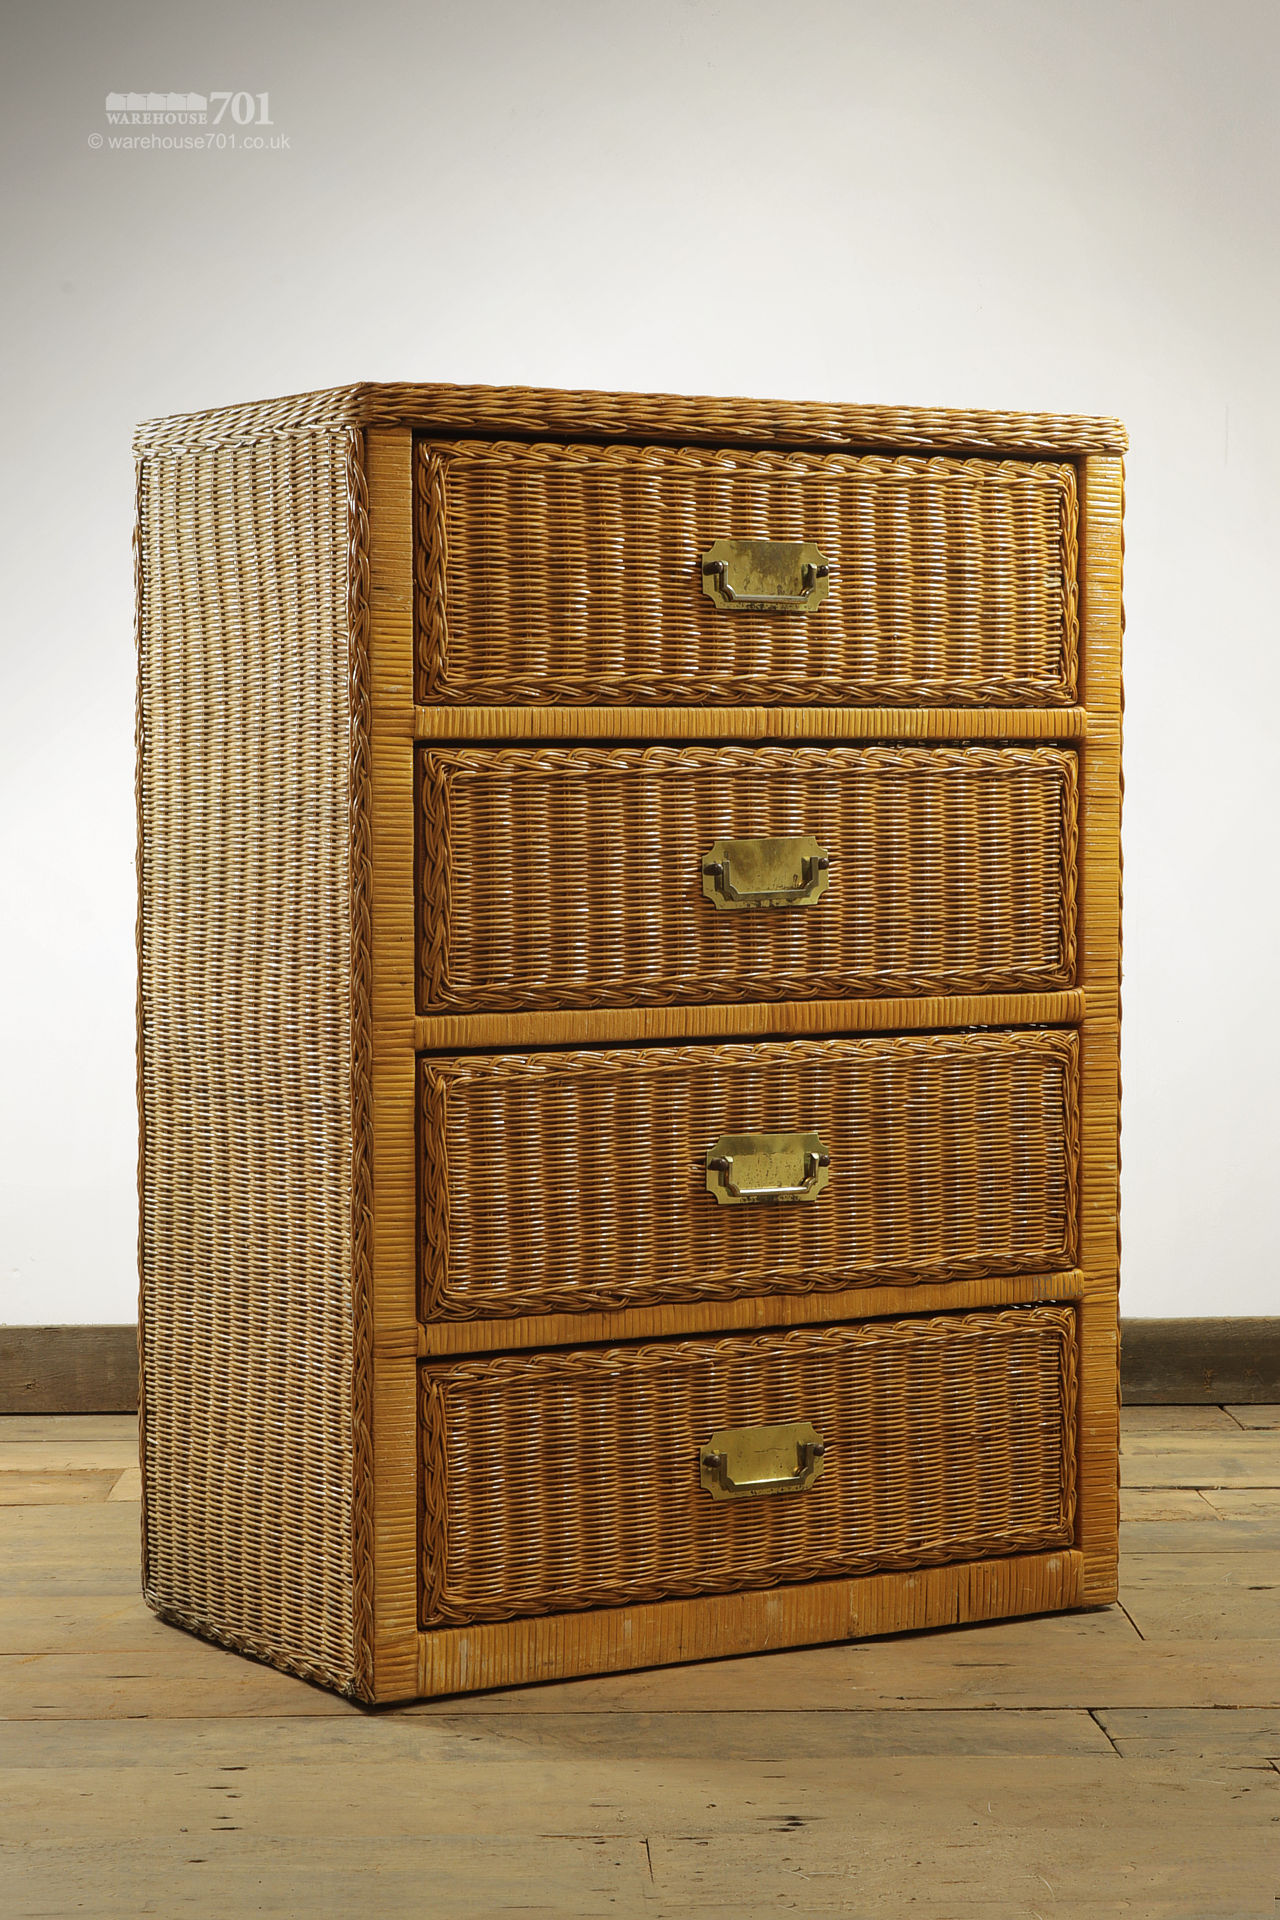 best service 12484 27640 Pair of Vintage Style Wicker Chest of Drawers — Reclamation & Architectural  Salvage in Herefordshire - Warehouse 701